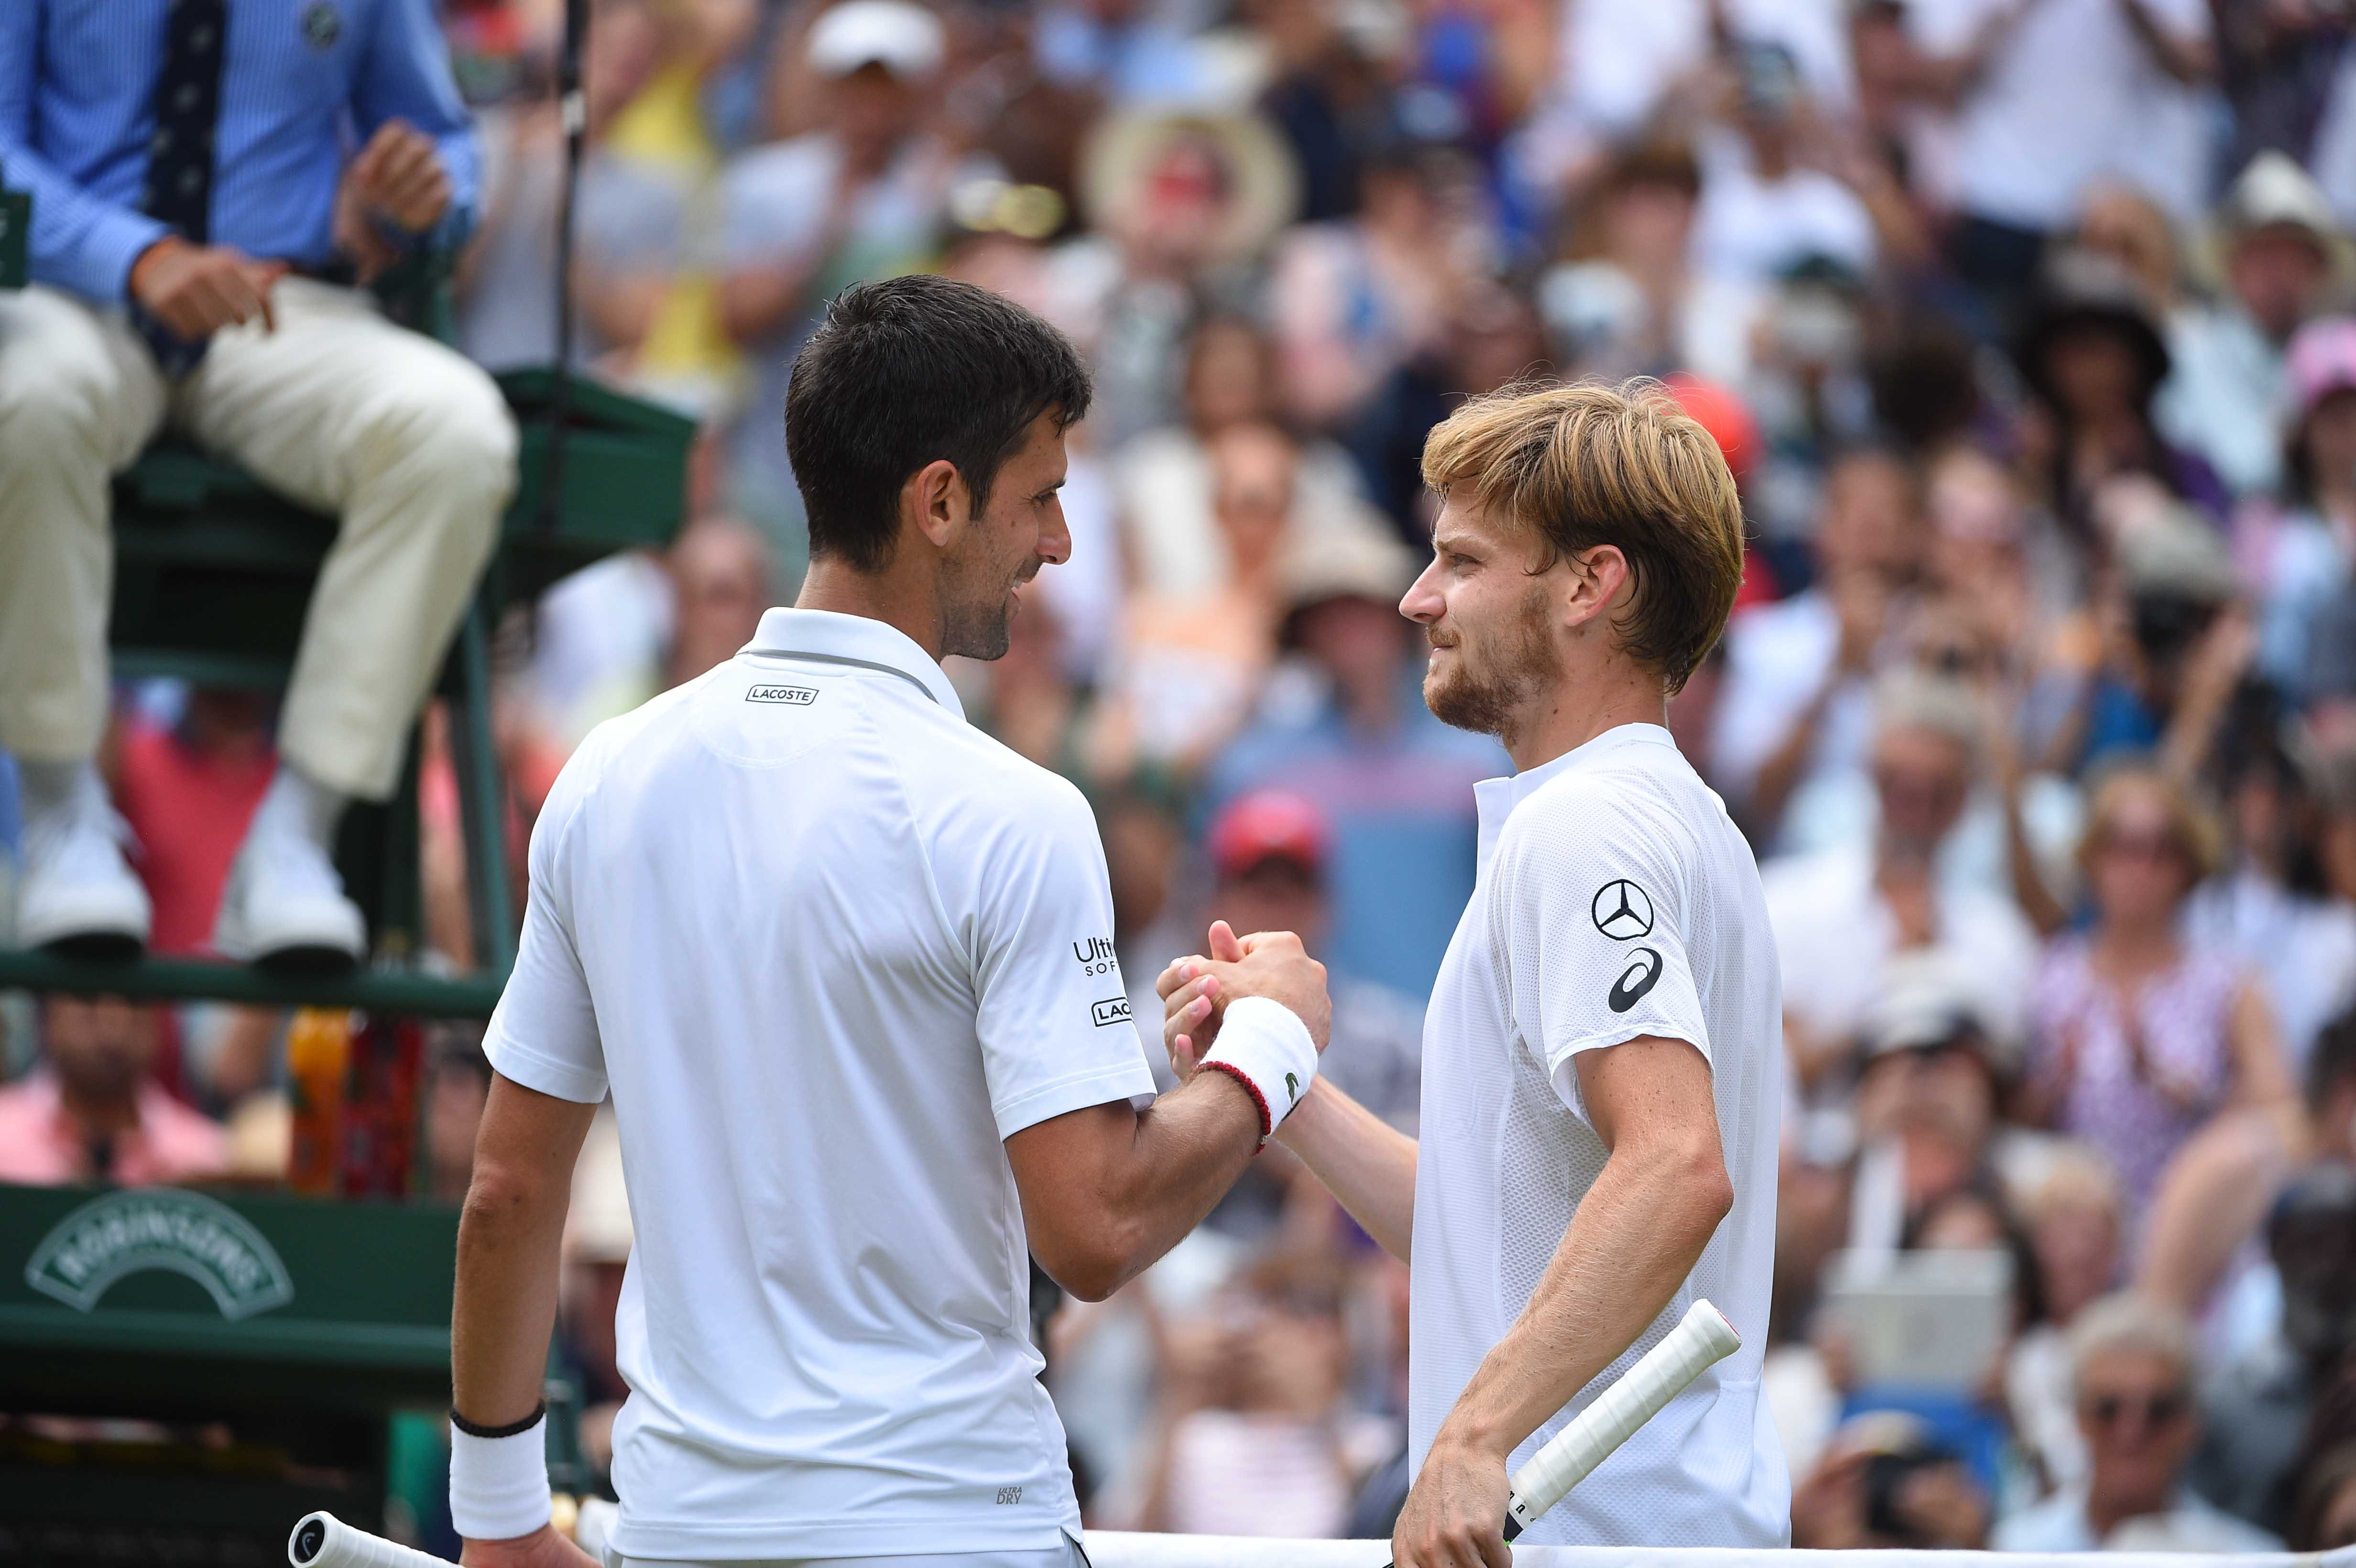 Novak Djokovic and David Goffin at the net at Wimbledon 2019.